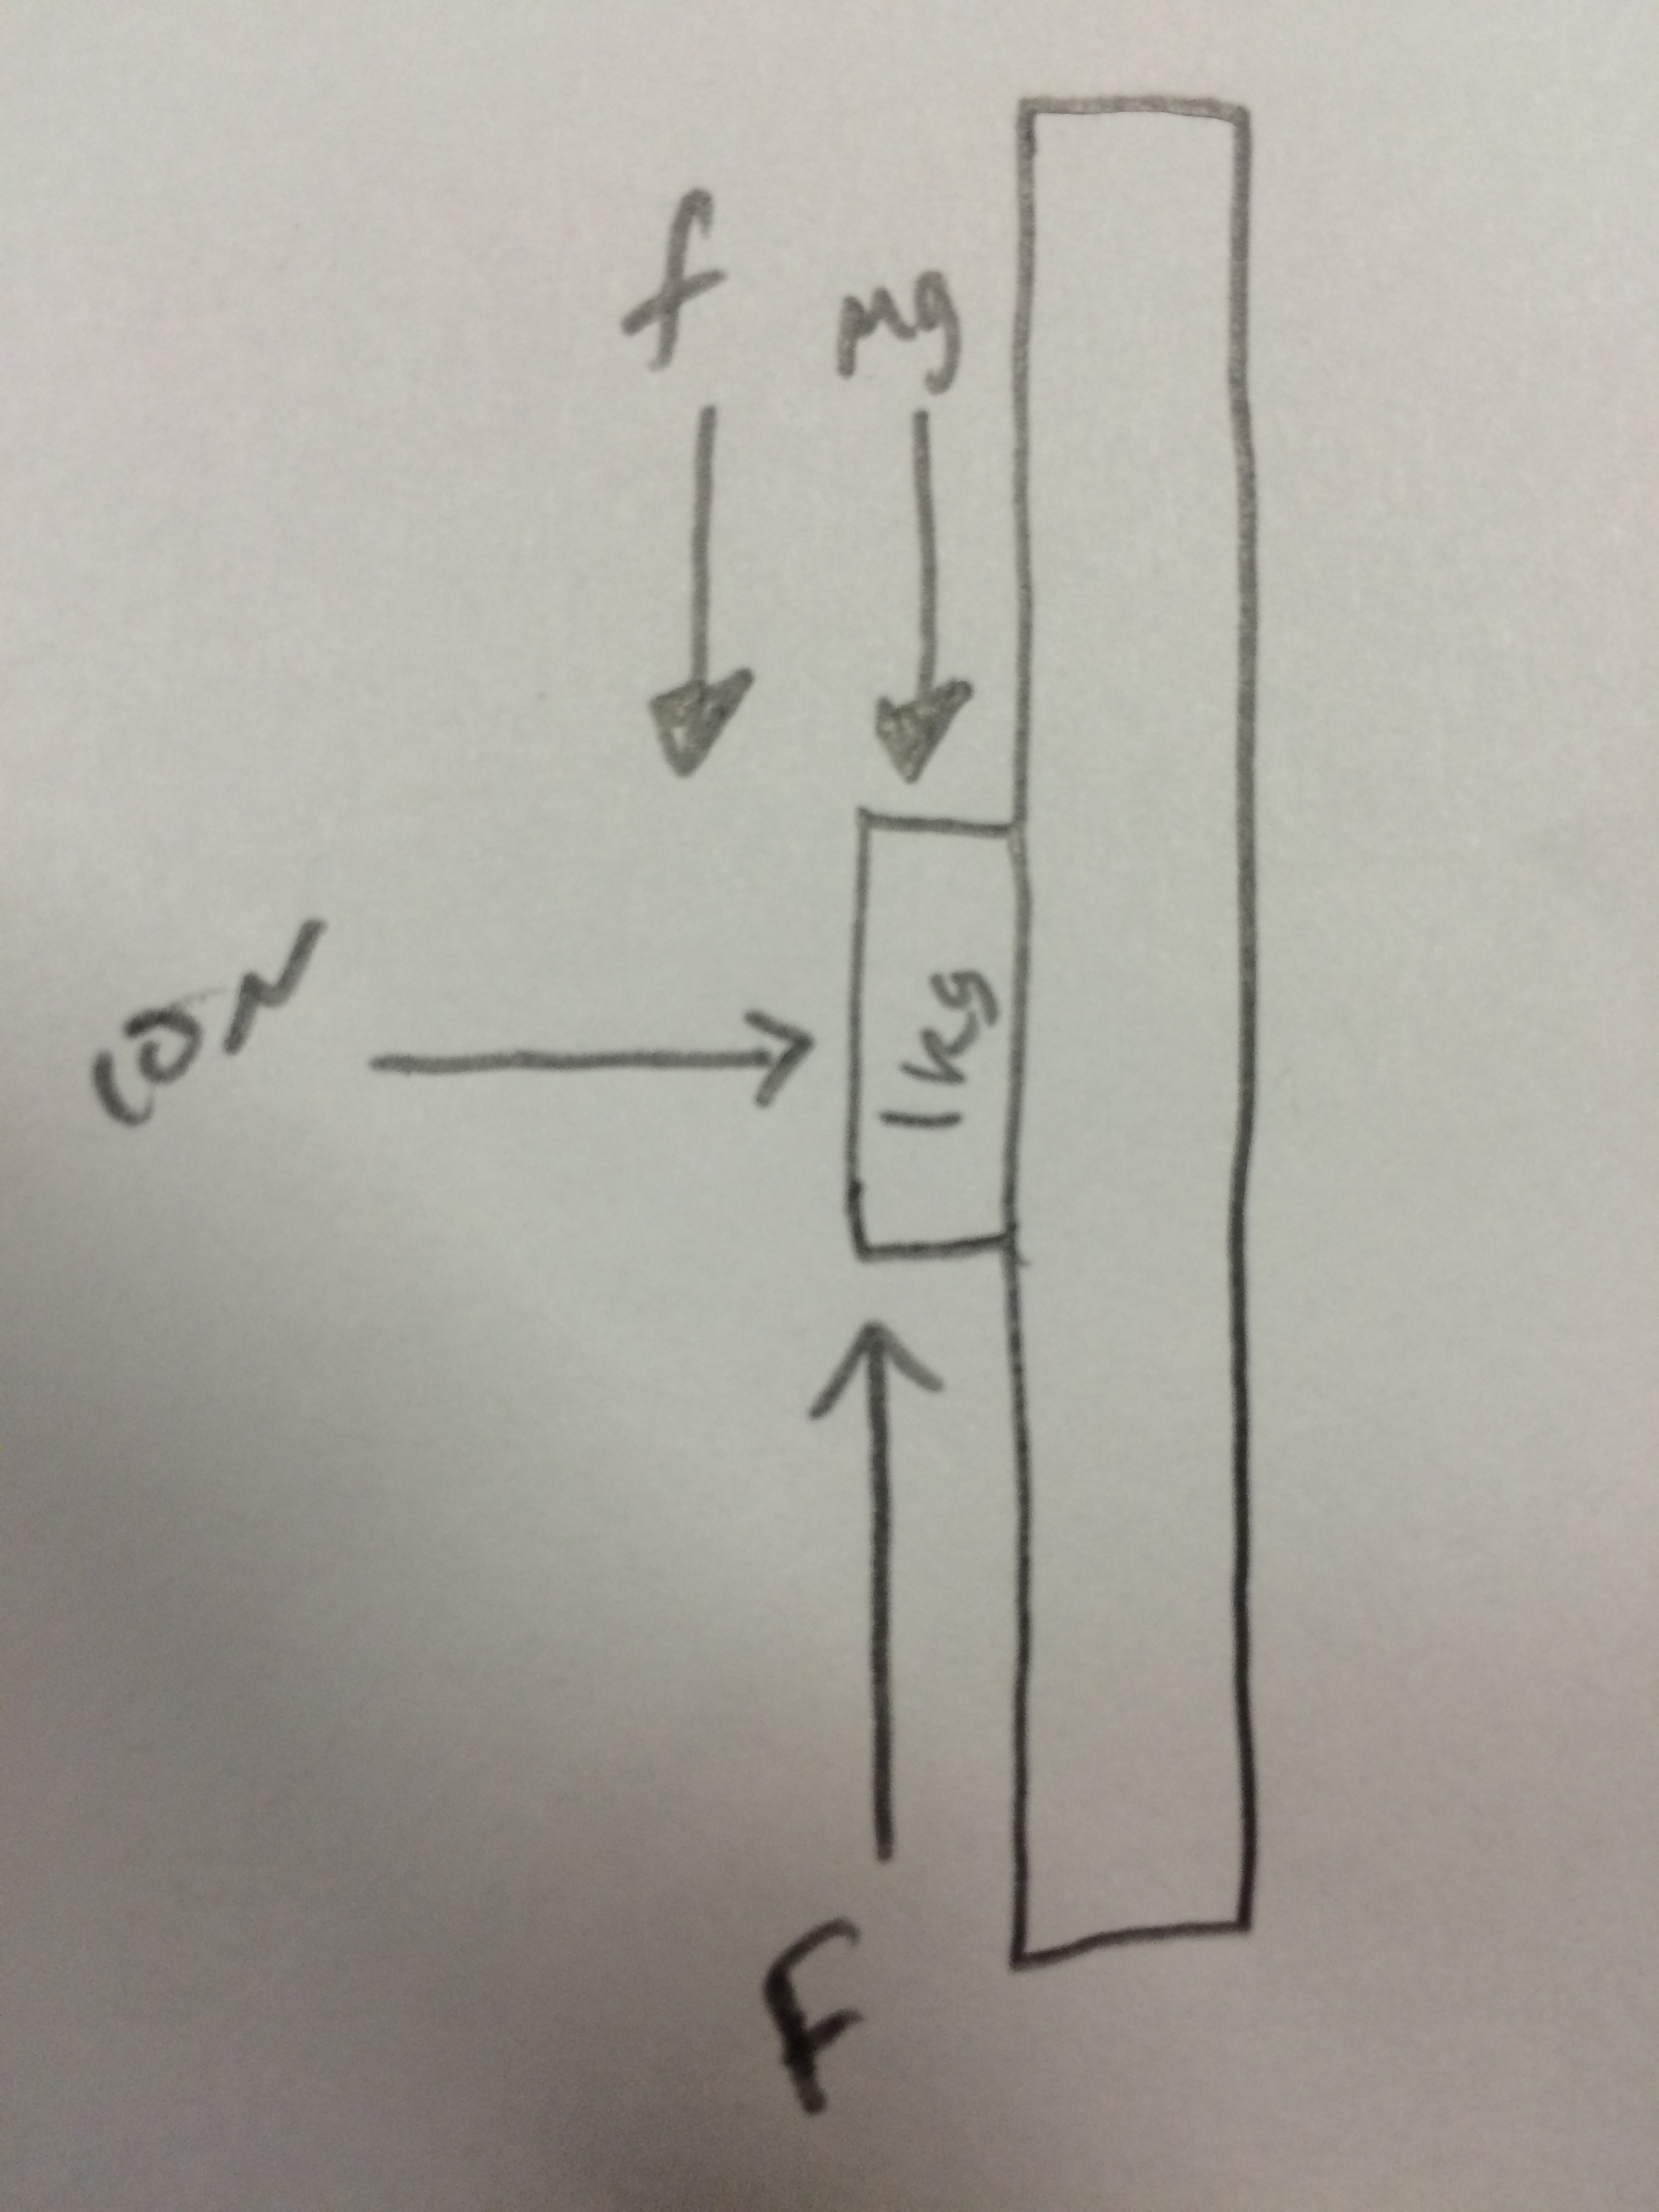 Force Of Friction Ap Physics 1 Free Body Diagram This Is Because It Fighting Against The Applied Upward If There Were No Would Be Pointing